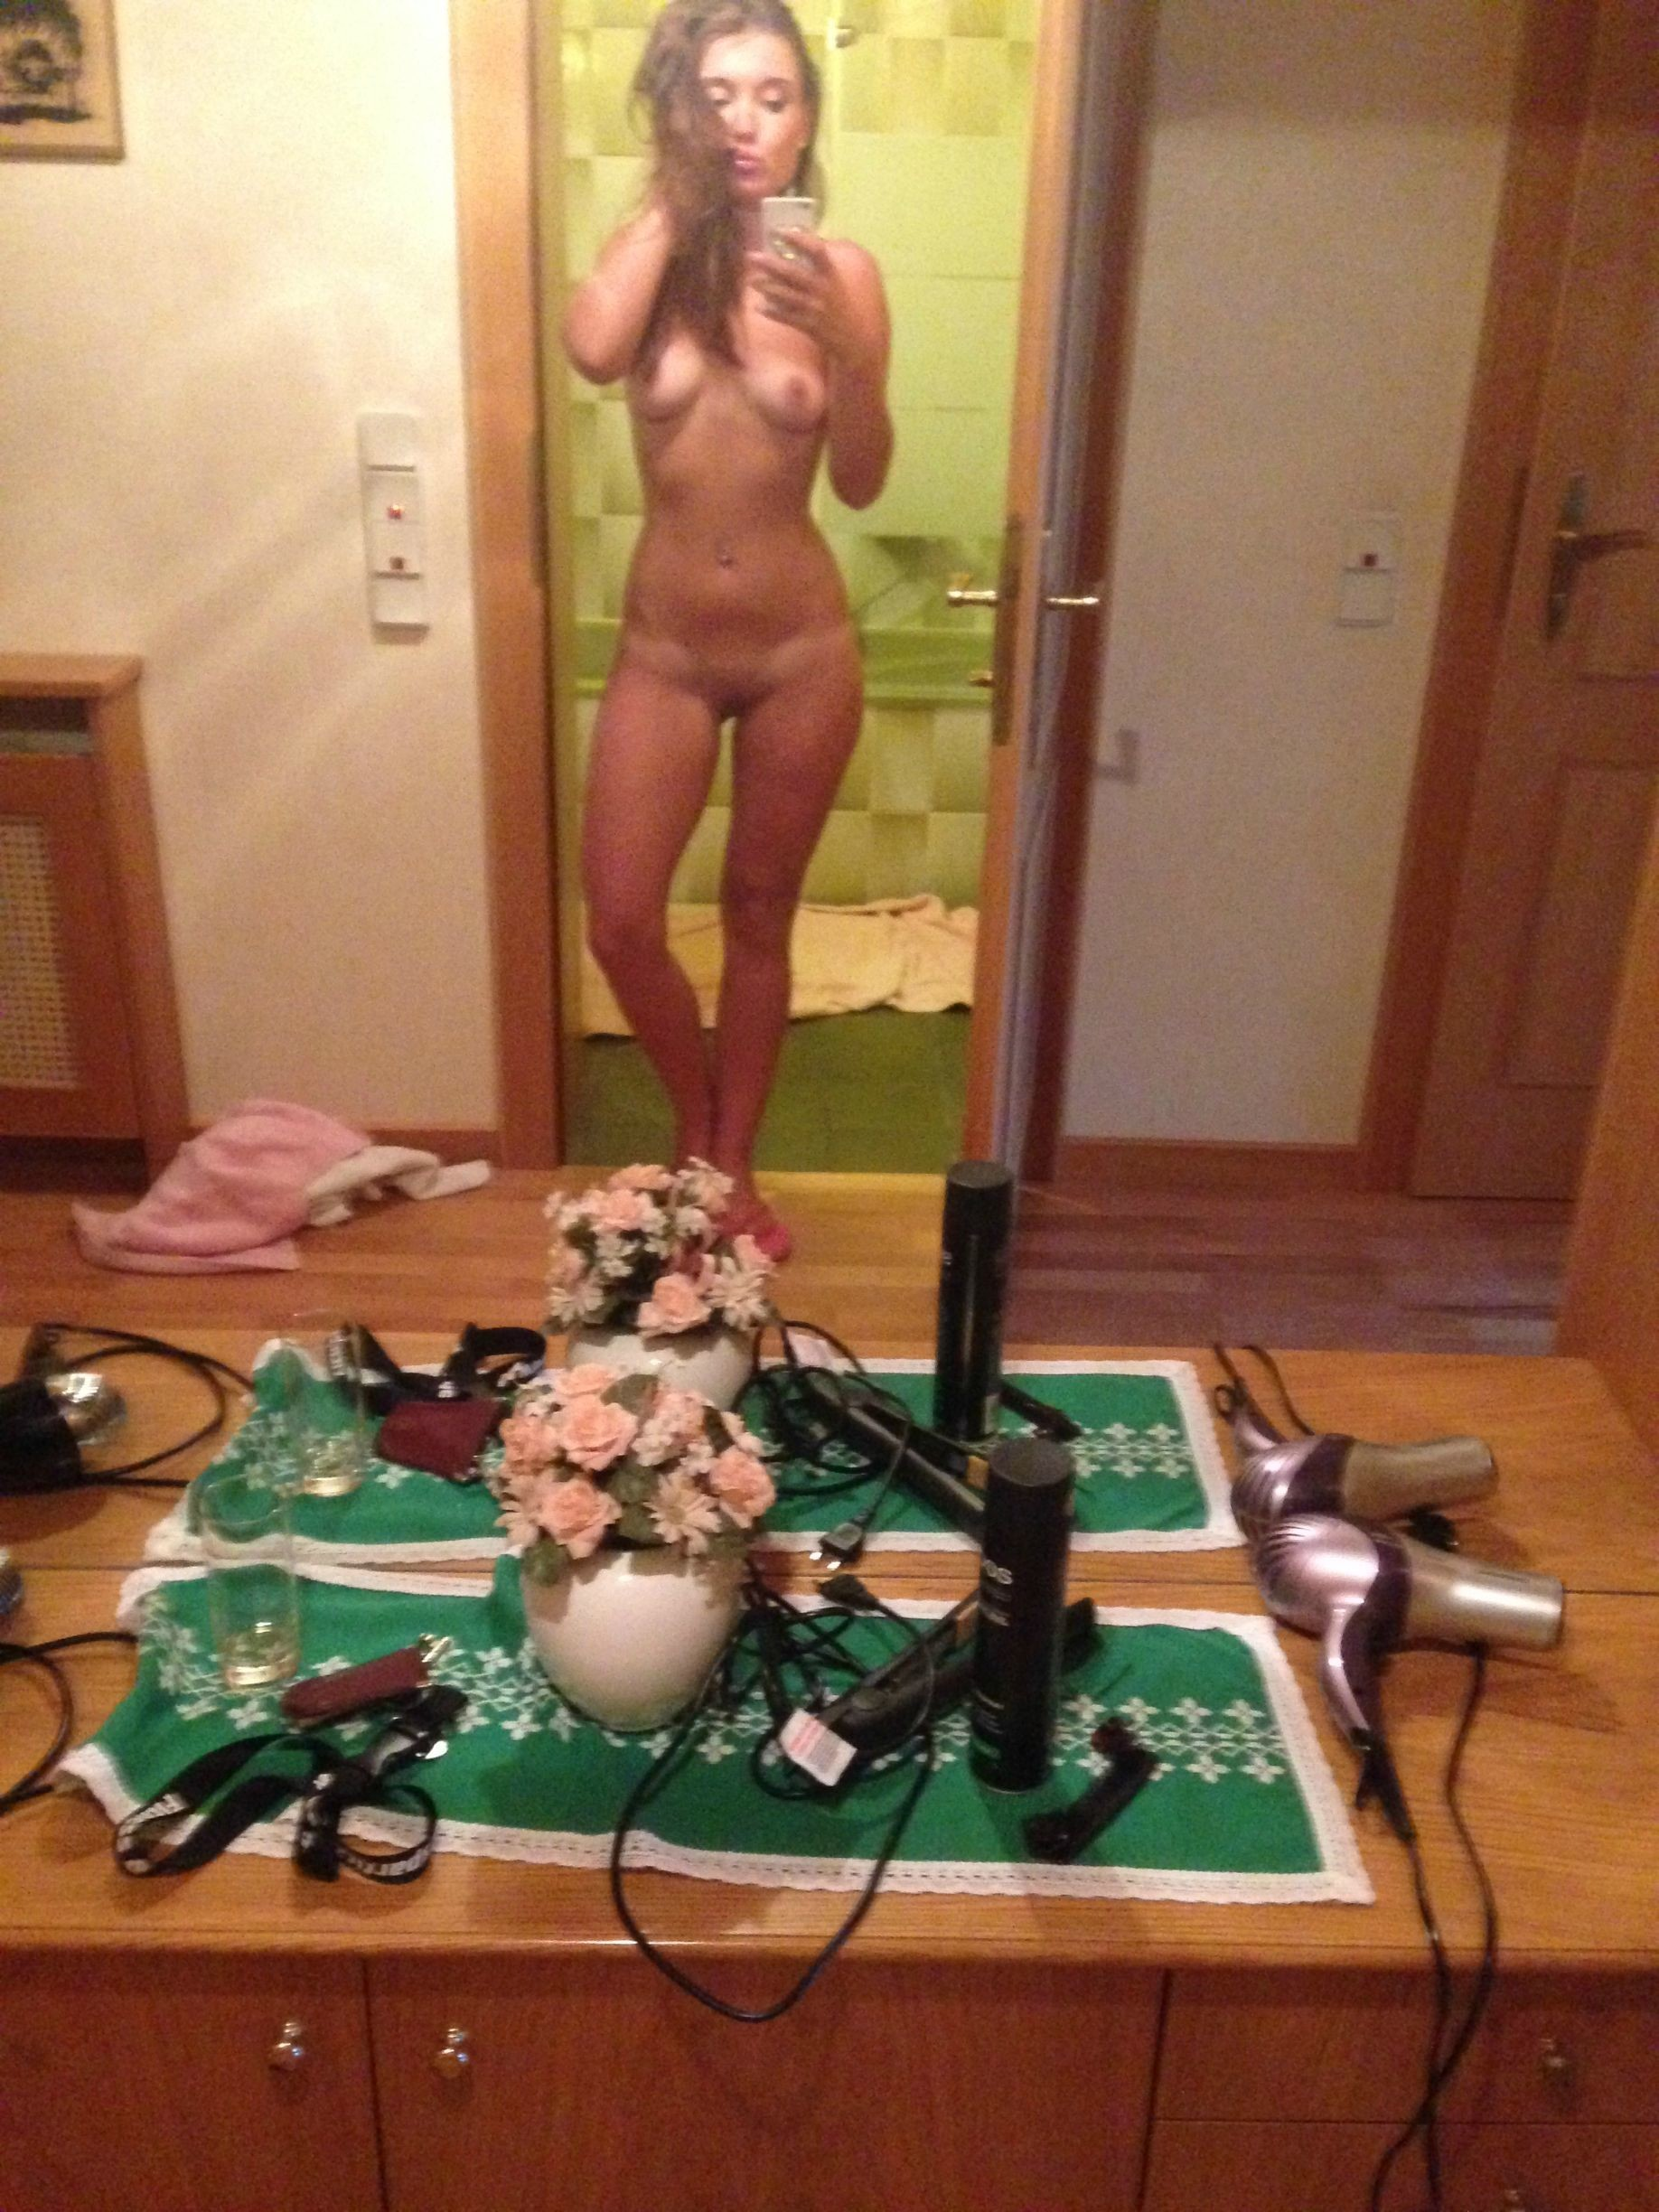 nude-selfie-mirror-girls-selfshot-young-mix-vol6-32